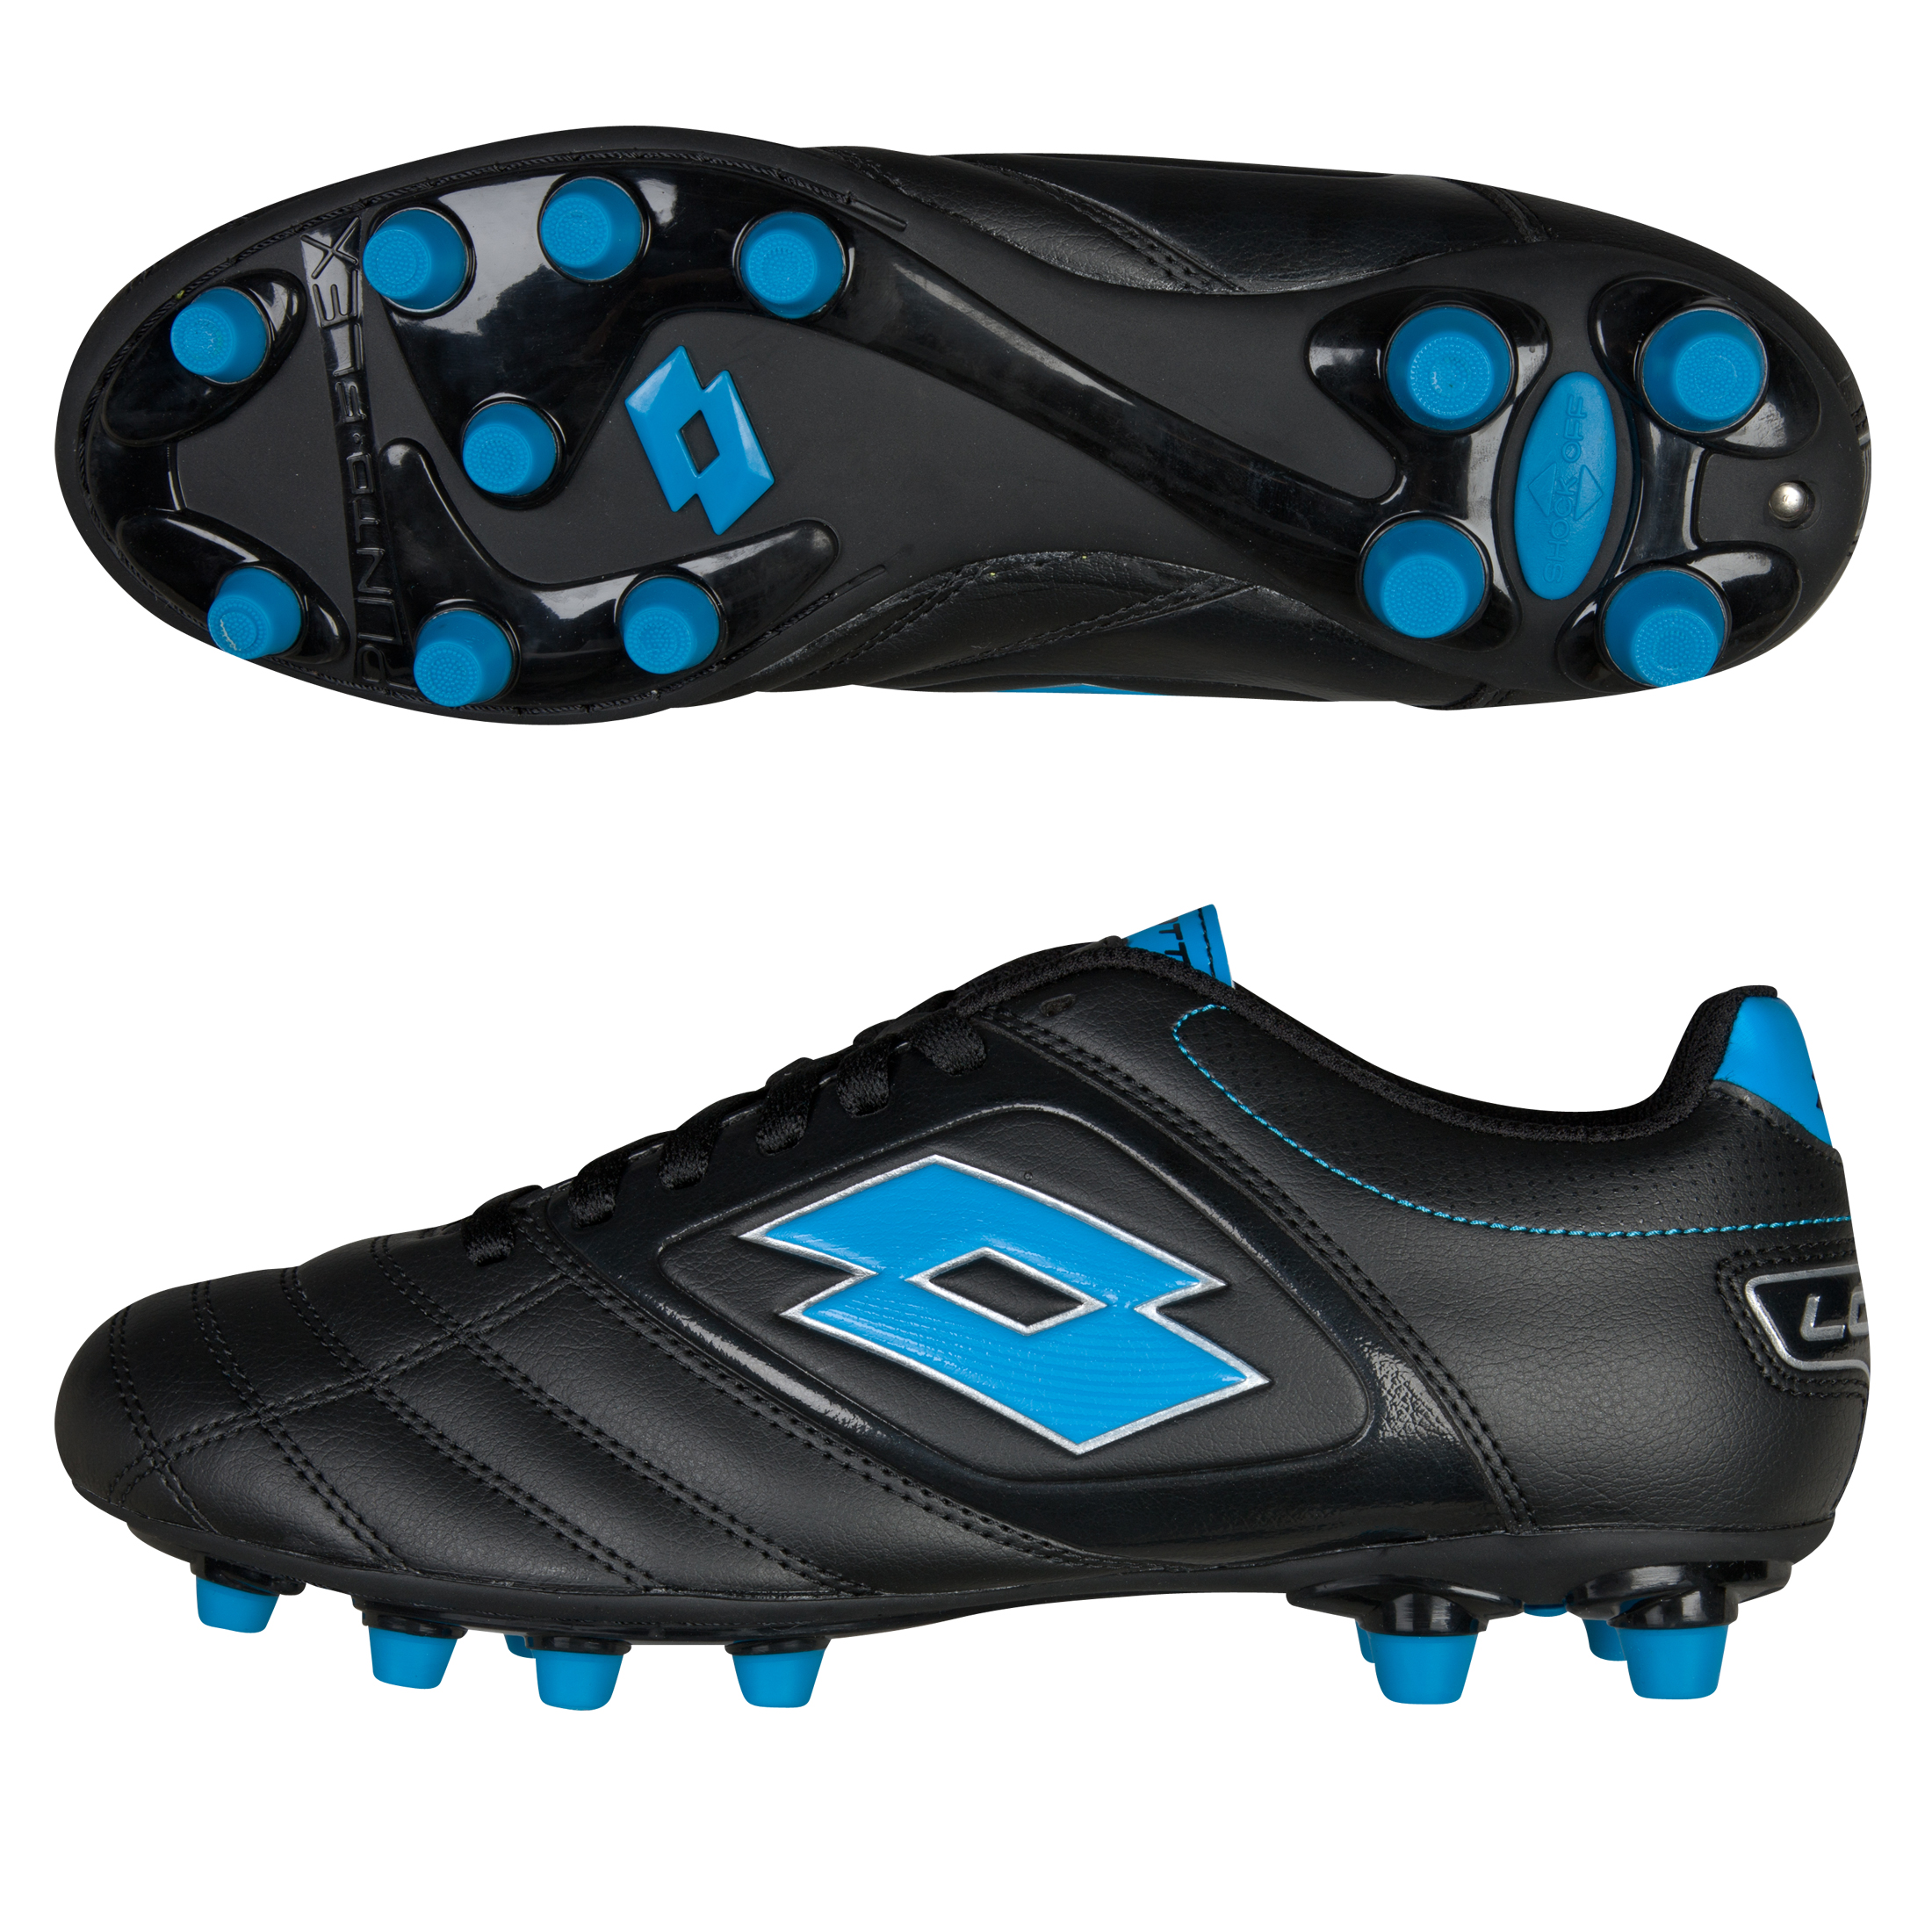 Lotto Stadio Potenza 500 Firm Ground Football Boots - Black/Blue Fluo